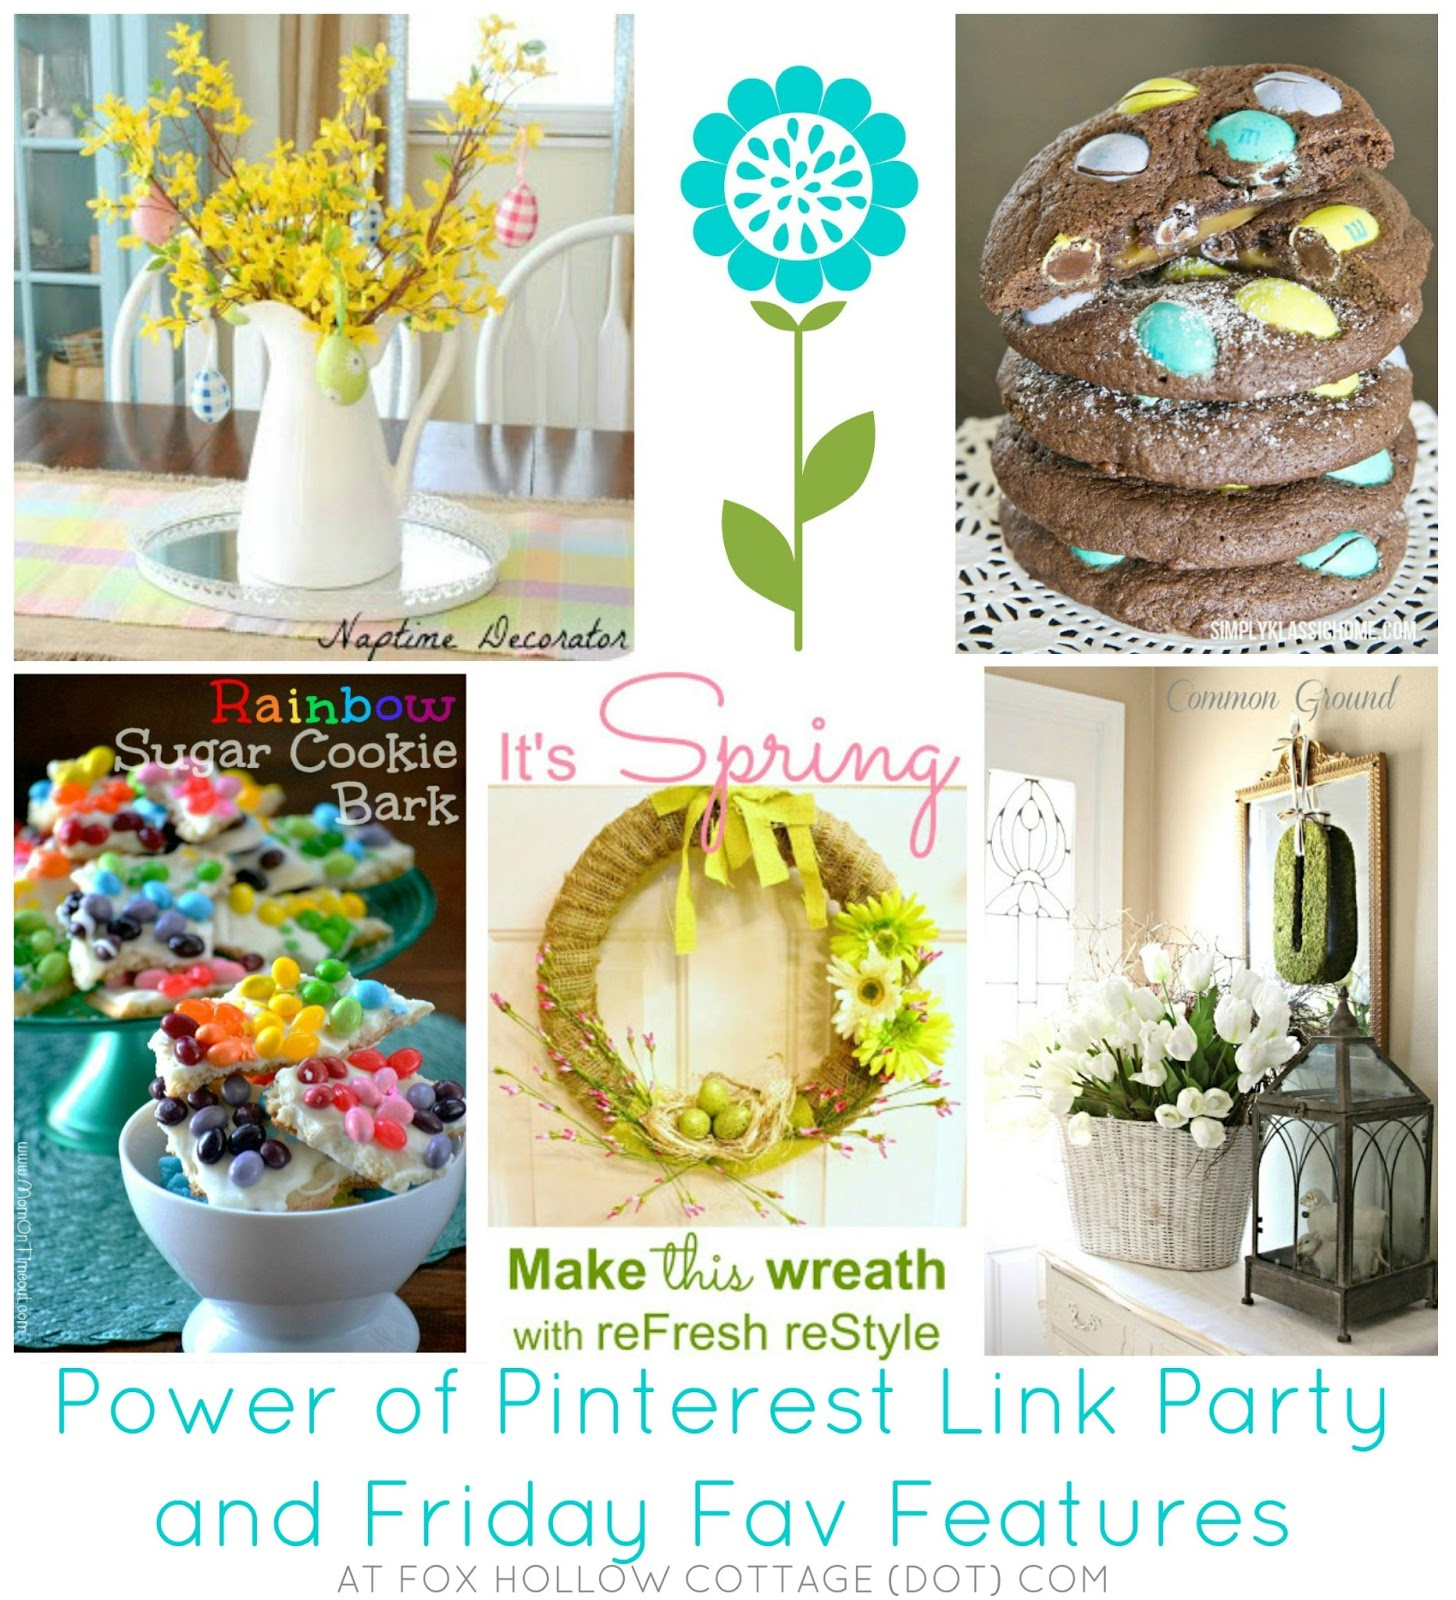 Arts And Crafts For Home Decor: Power Of Pinterest Link Party (and Friday Fav Features